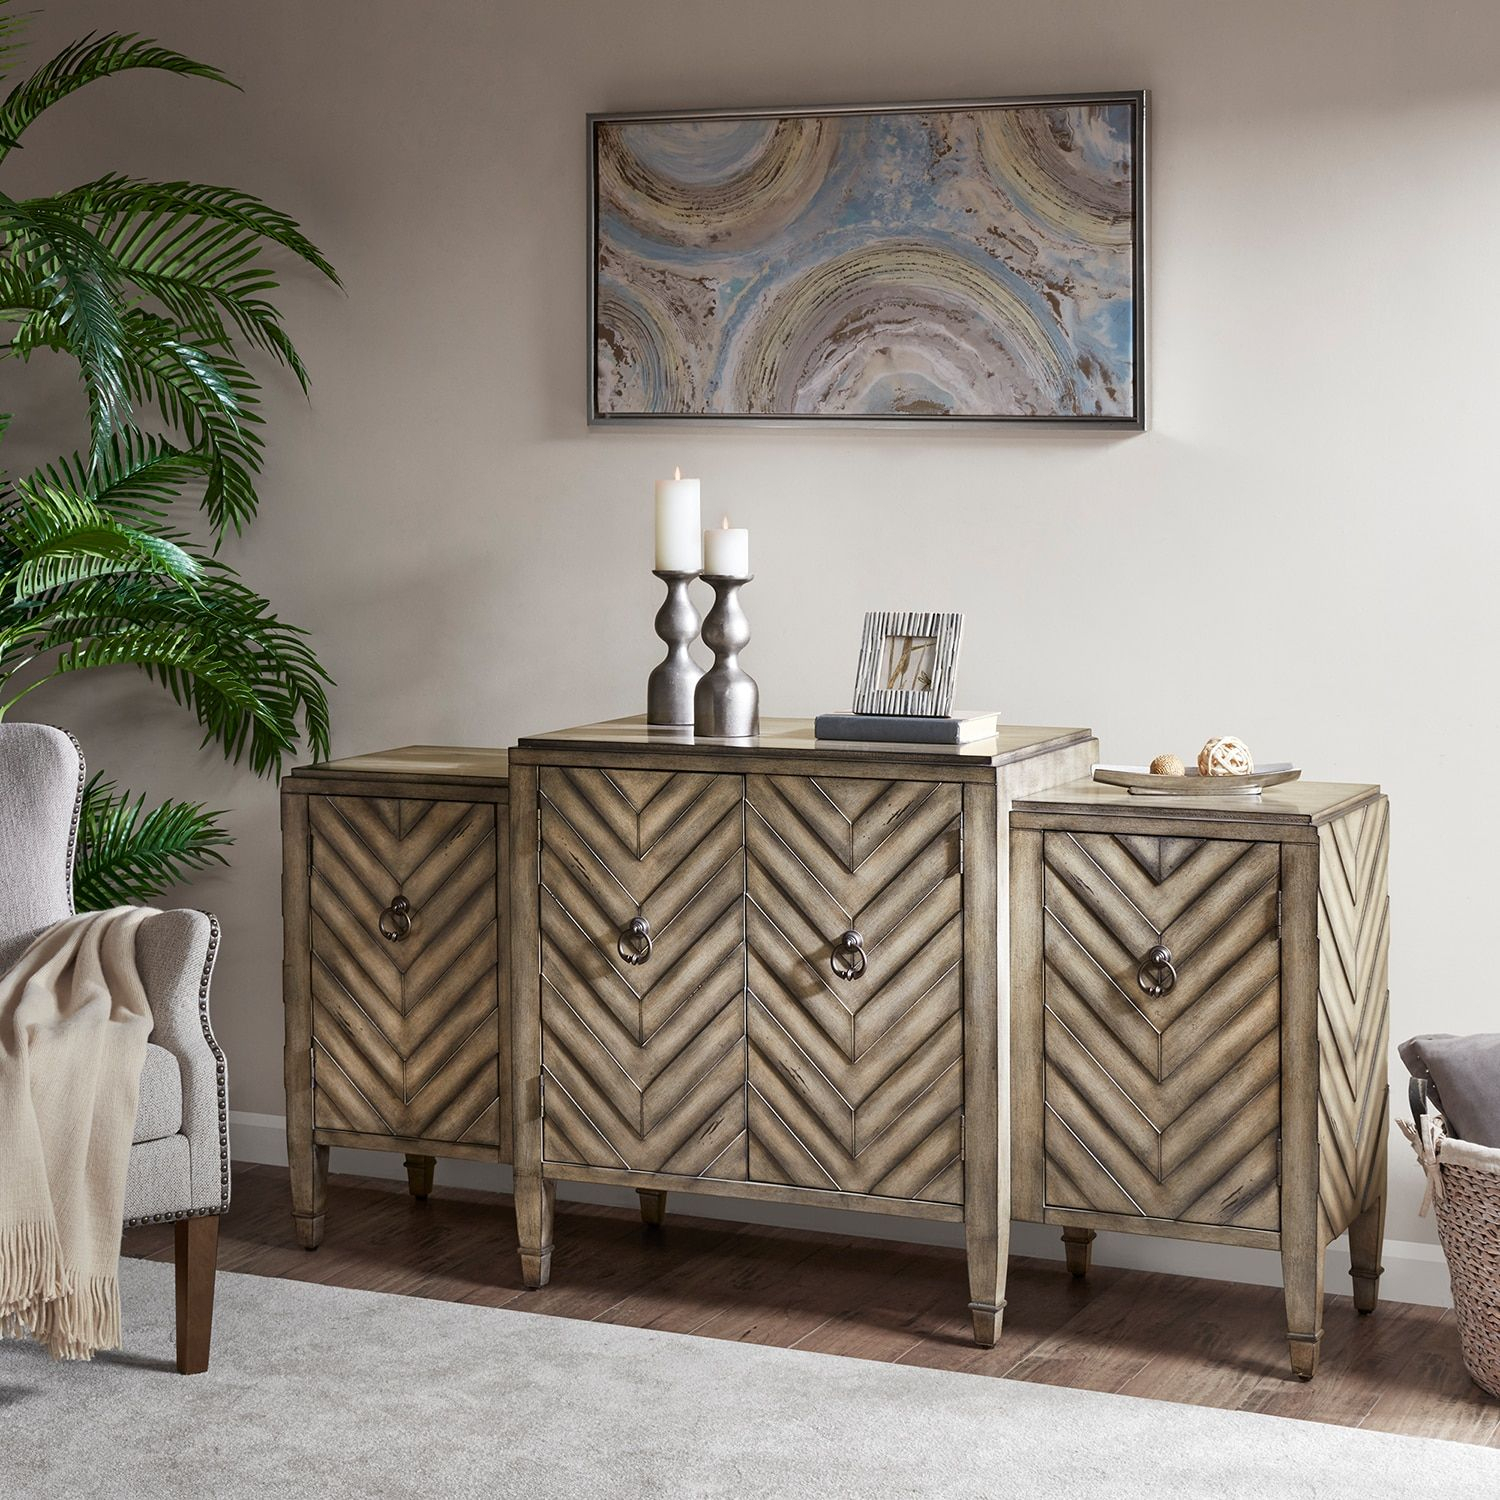 Madison Park Egan Sideboard Storage Cabinet In 2019 With Regard To Armelle Sideboards (Image 16 of 30)